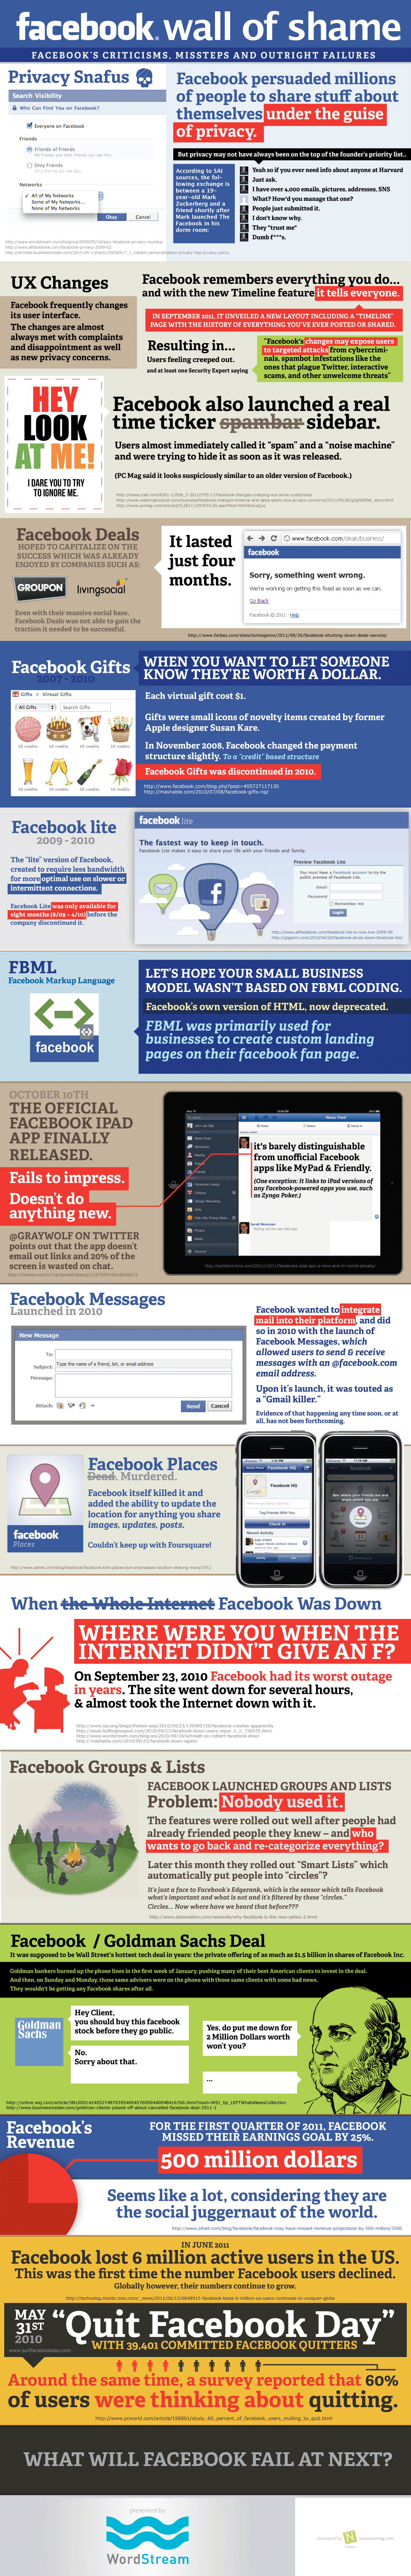 Facebook Wall Of Shame: The Failures Stacked [Infographic]